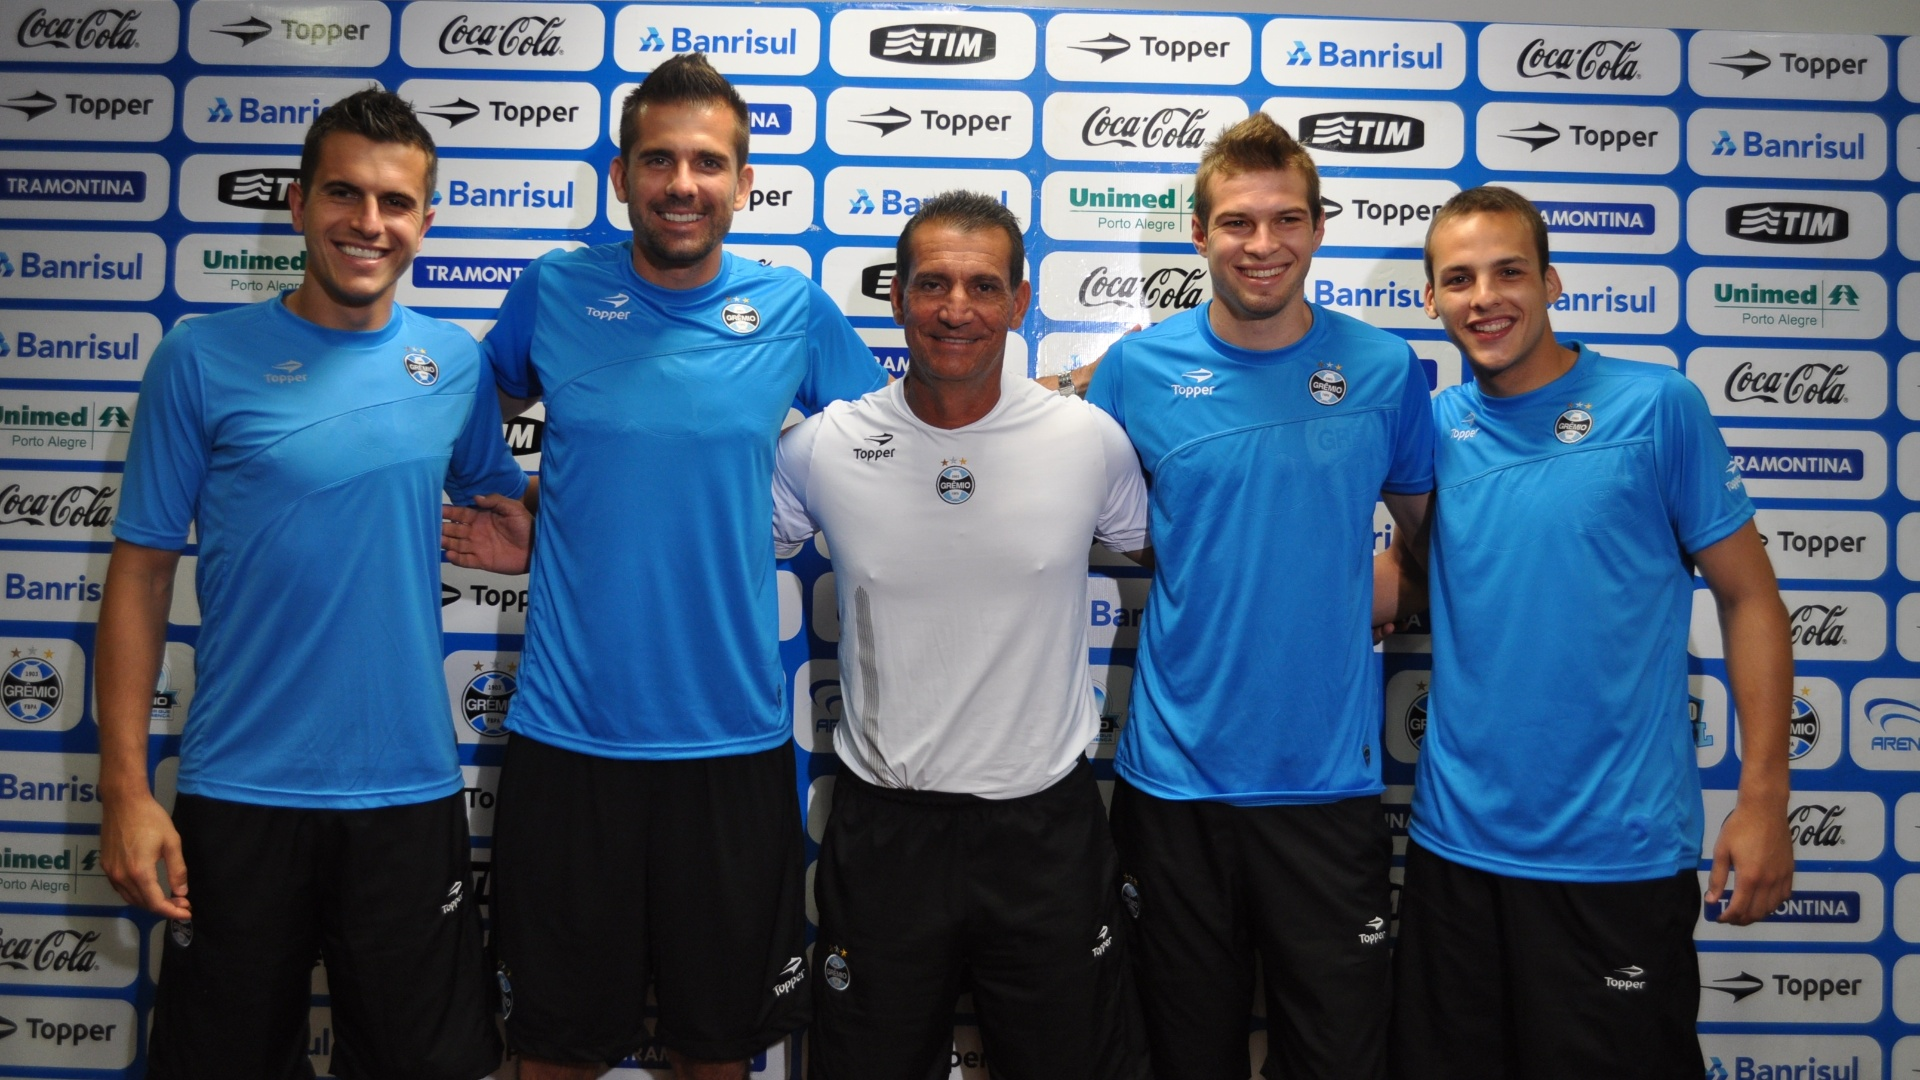 Marcelo Grohe, Victor, Francisco Cerssimo, Busatto e Matheus, goleiros e preparador do Grmio (11/01/2012)